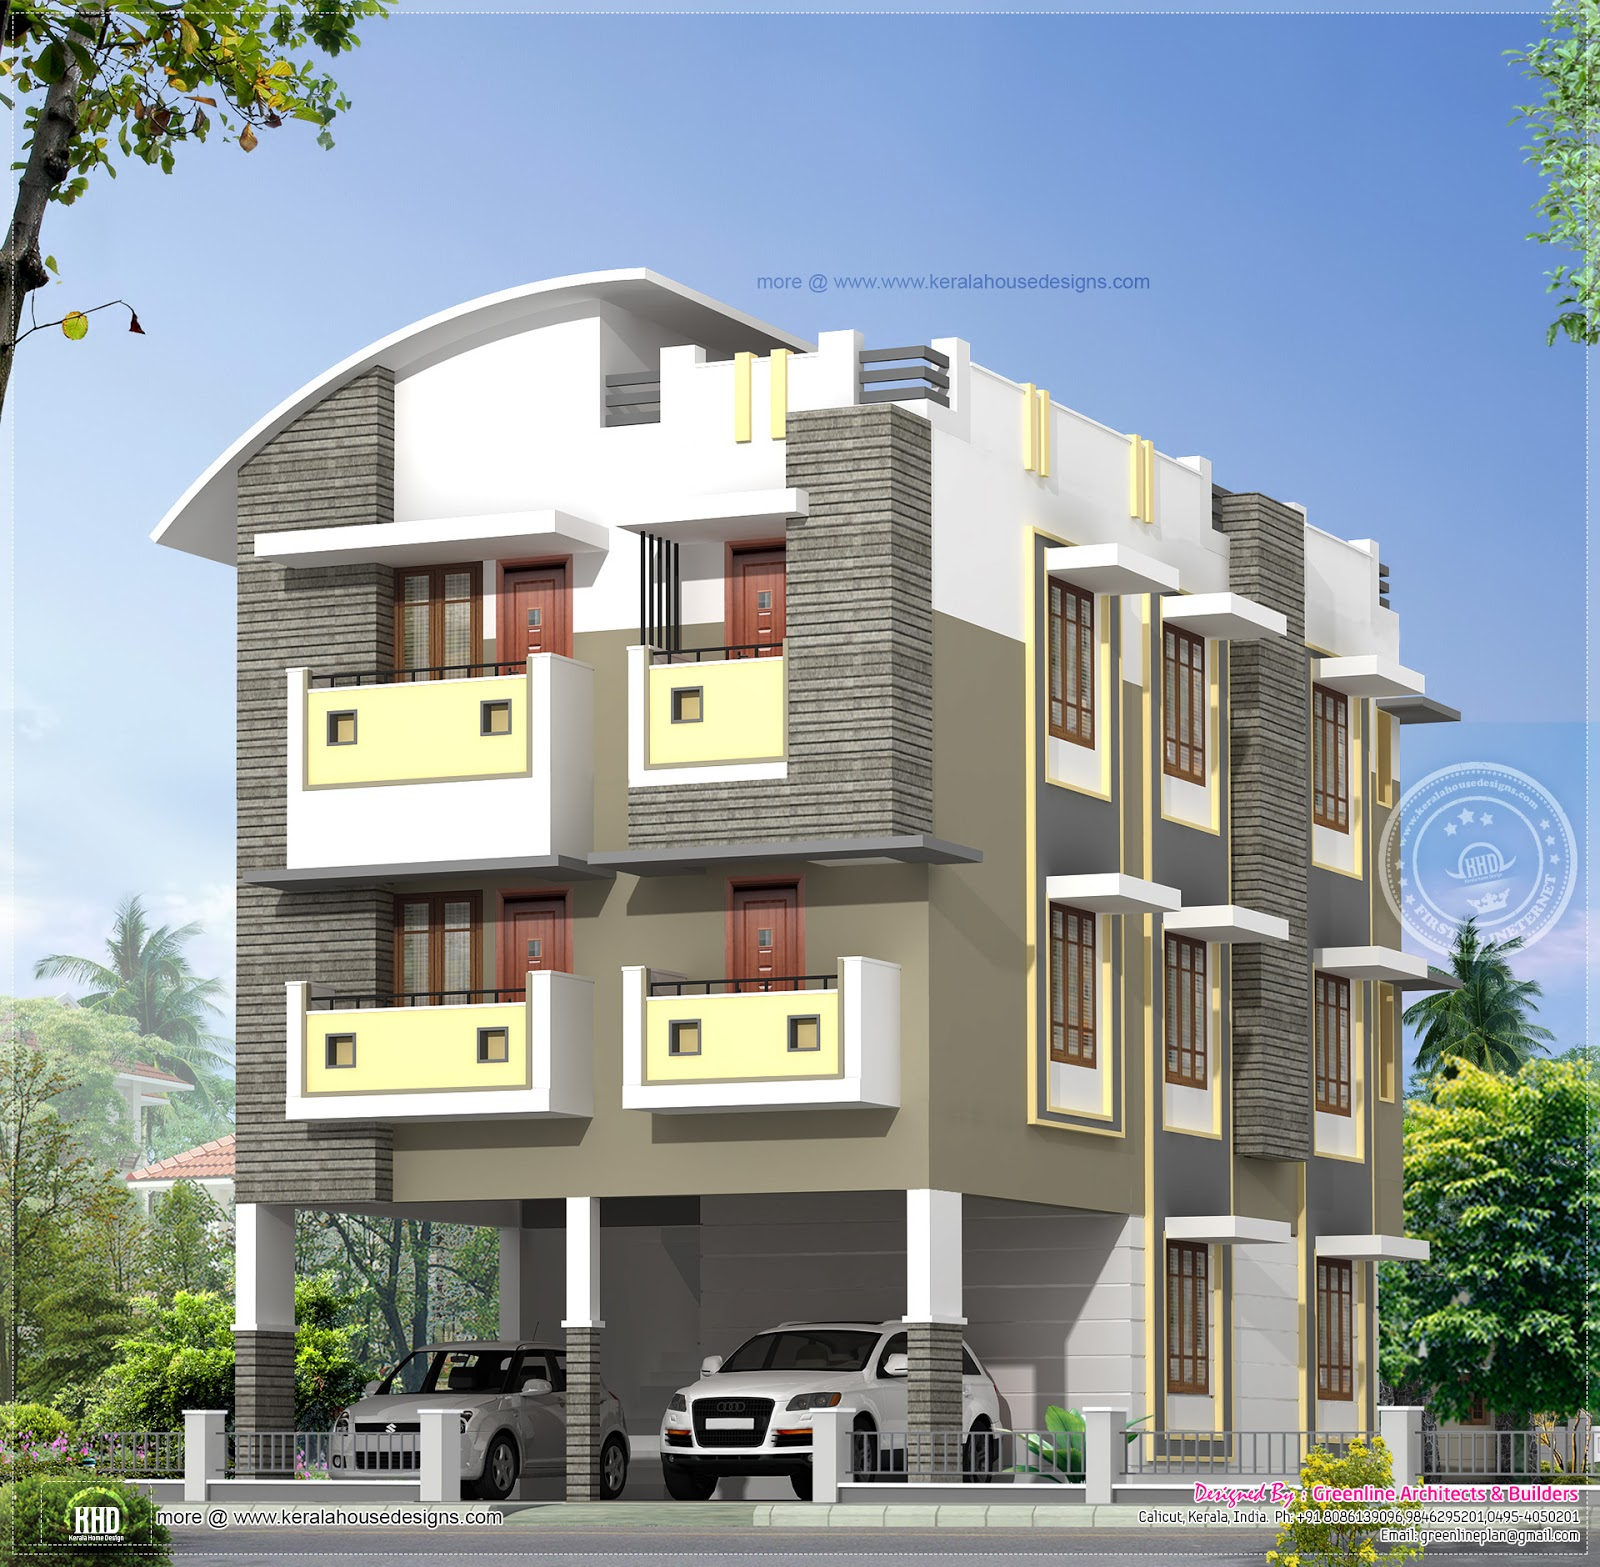 House Floor Plans 50 400 Sqm Designed By Teoalida: 3 Floor House Plans India